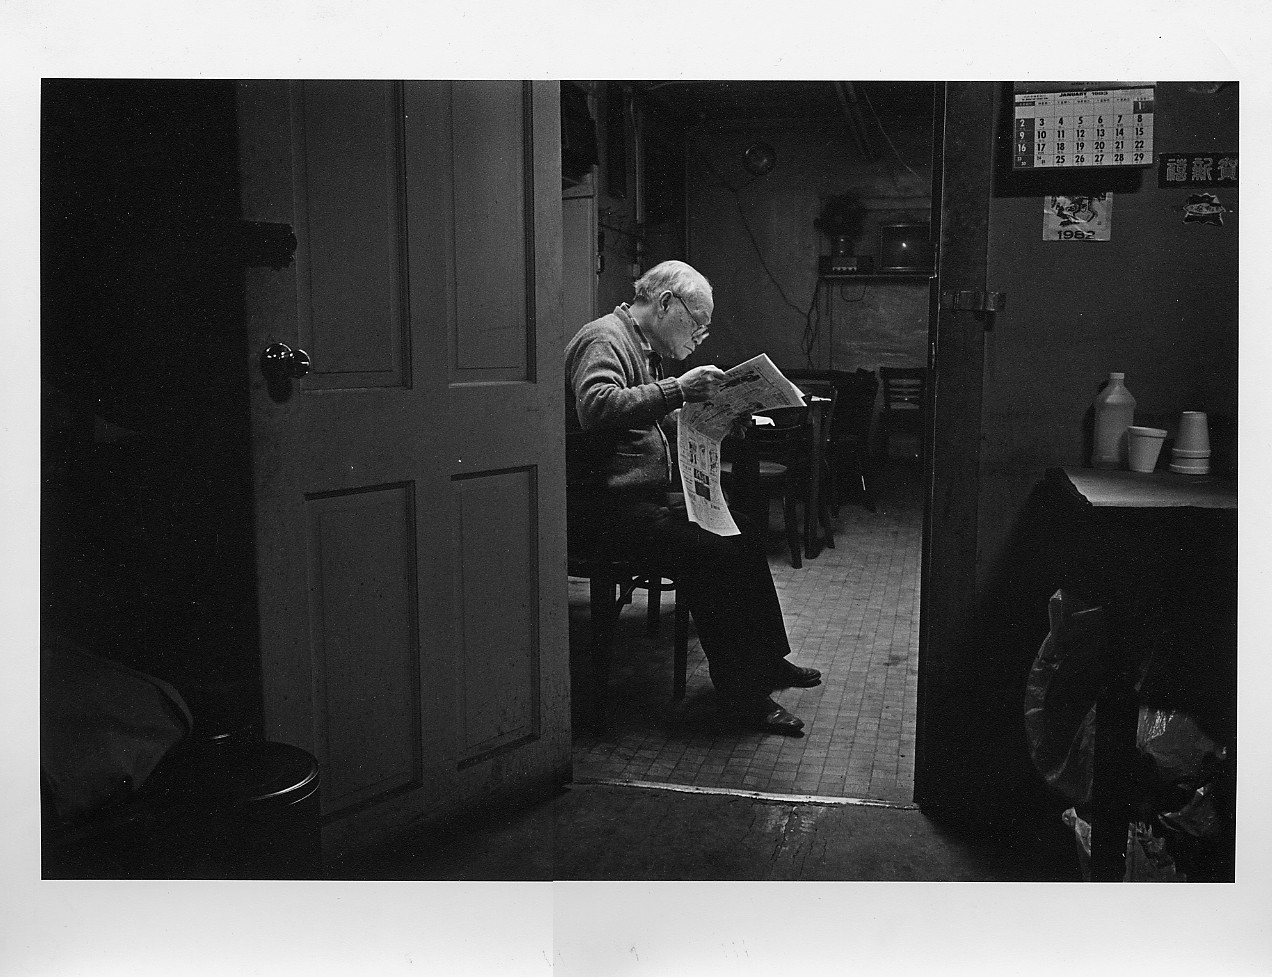 04 June 2019 Posted. An old Man Reading in a Bachelor Apartment located ae 68 Byard Street, Photograph taken by Bud Glick. Museum of Chinese in America (MOCA) Collection. 一位老人在位于摆也街68号的单身公寓读报纸,照片由Bud Glick拍摄,美国华人博物馆(MOCA)馆藏